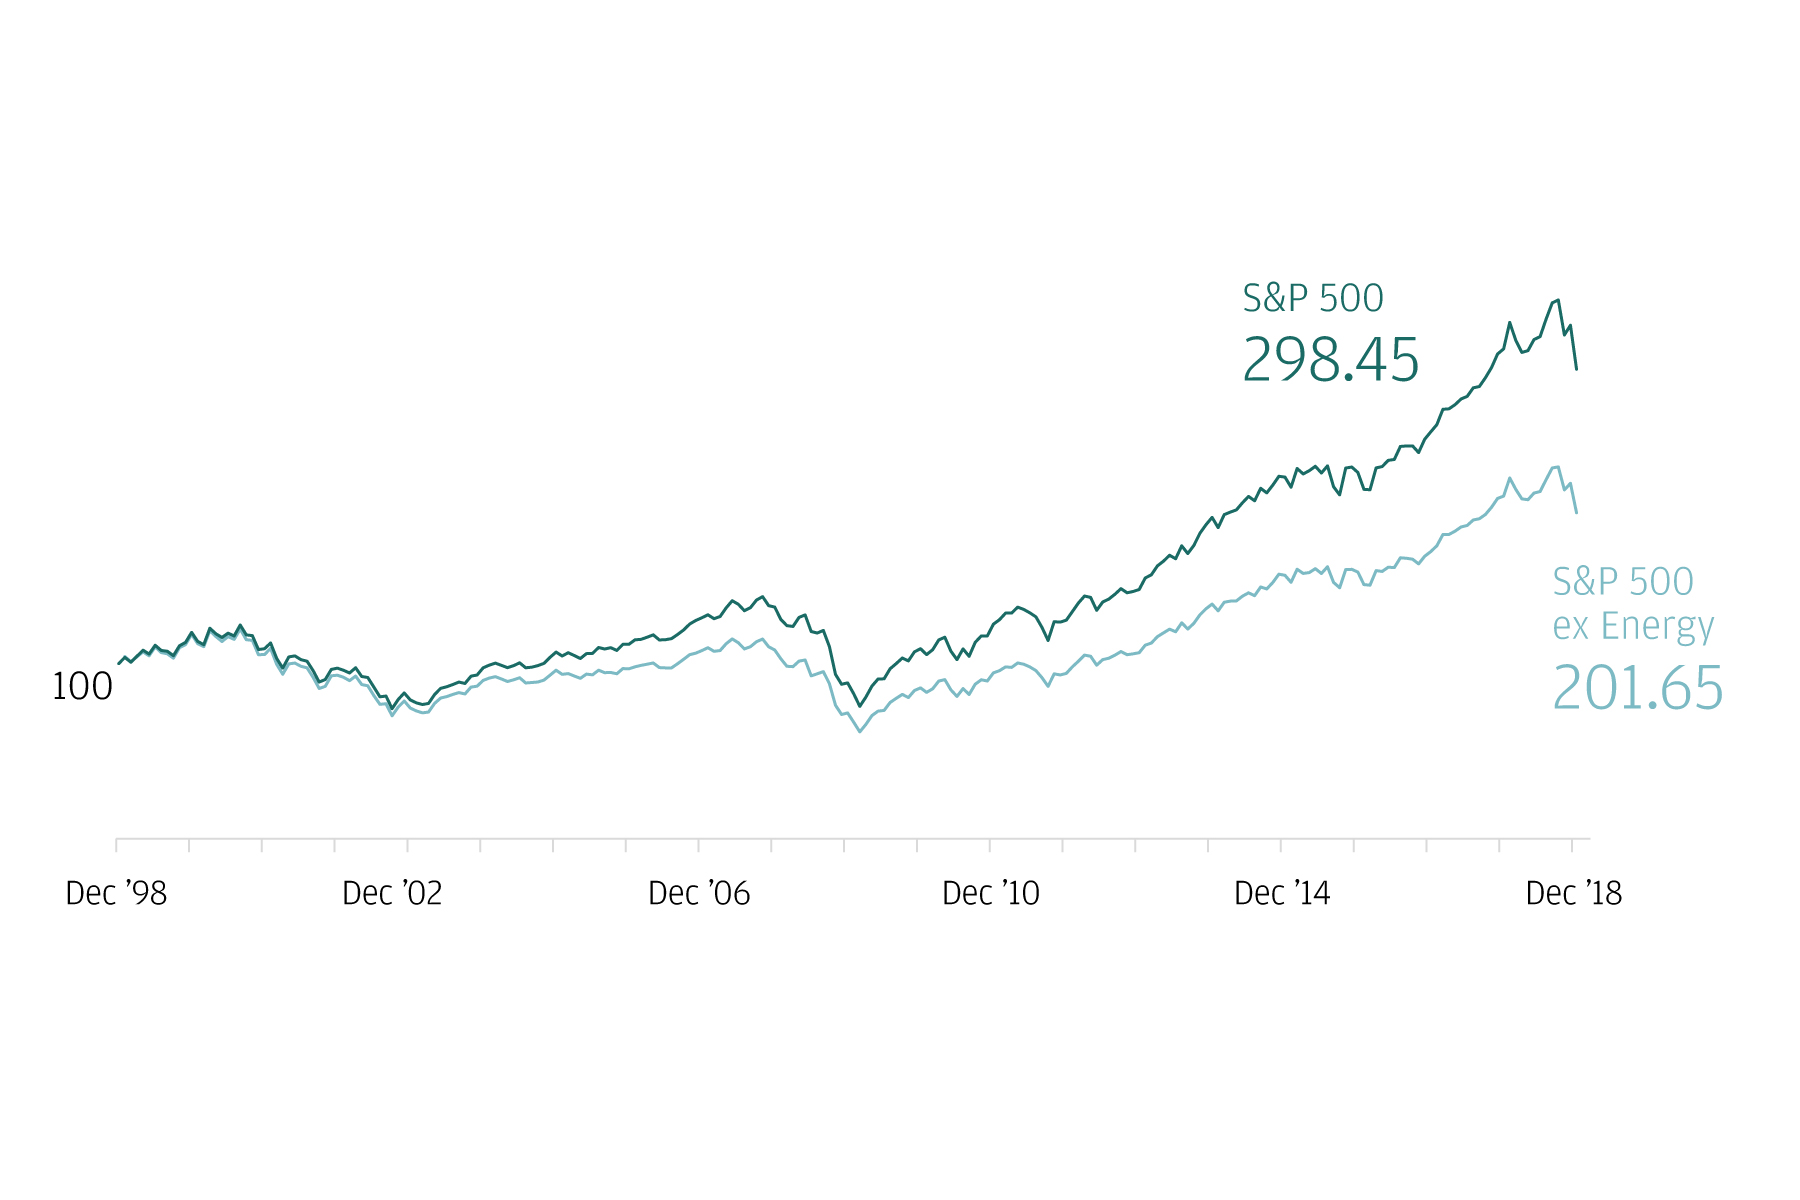 This two-line graph tracks the growth of the S&P 500 Index and the S&P 500 Ex-Energy Index from November 1998 to February 2018.